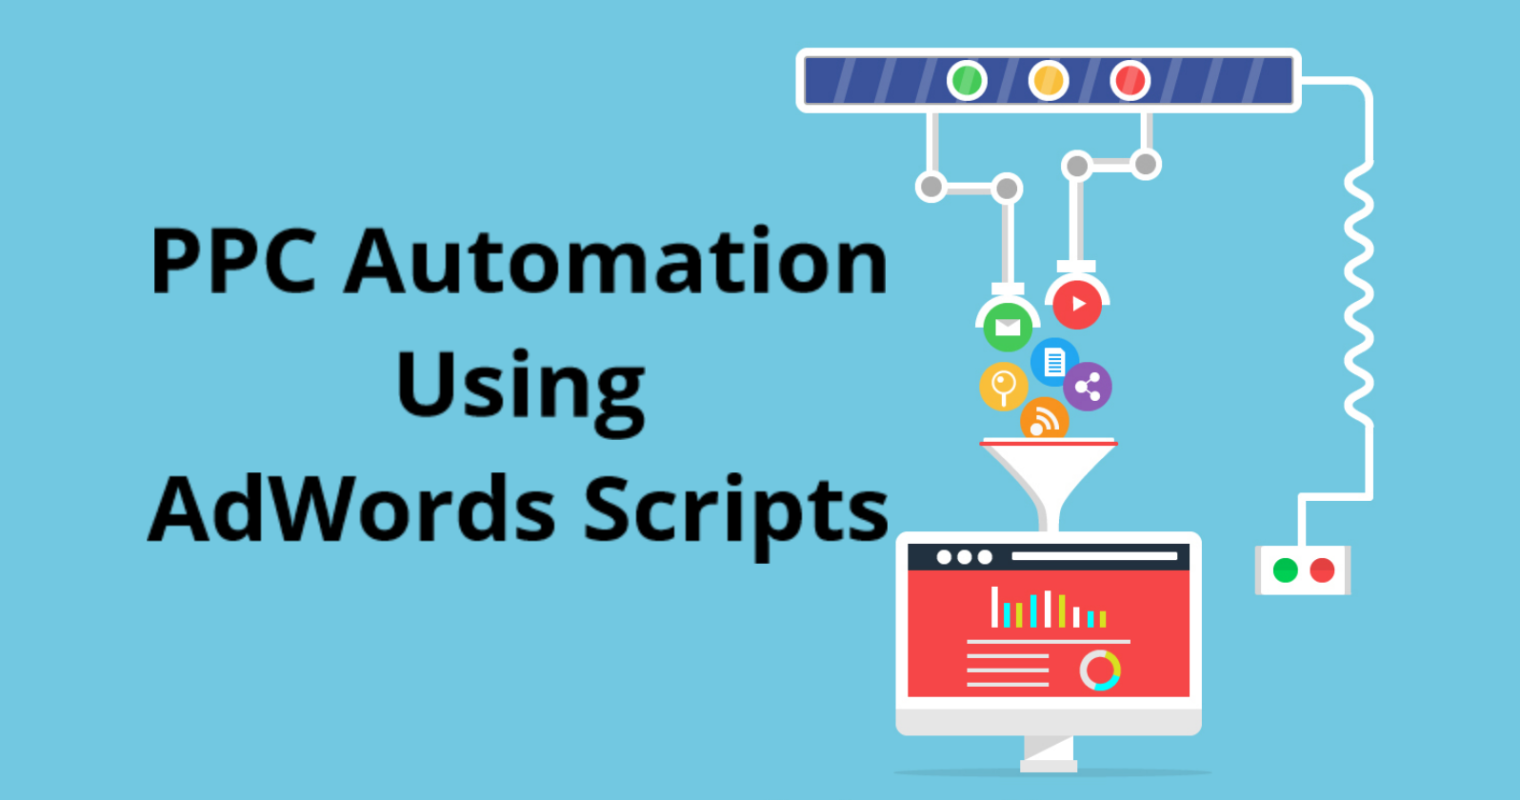 5 Things You Could Be Automating with AdWords Scripts